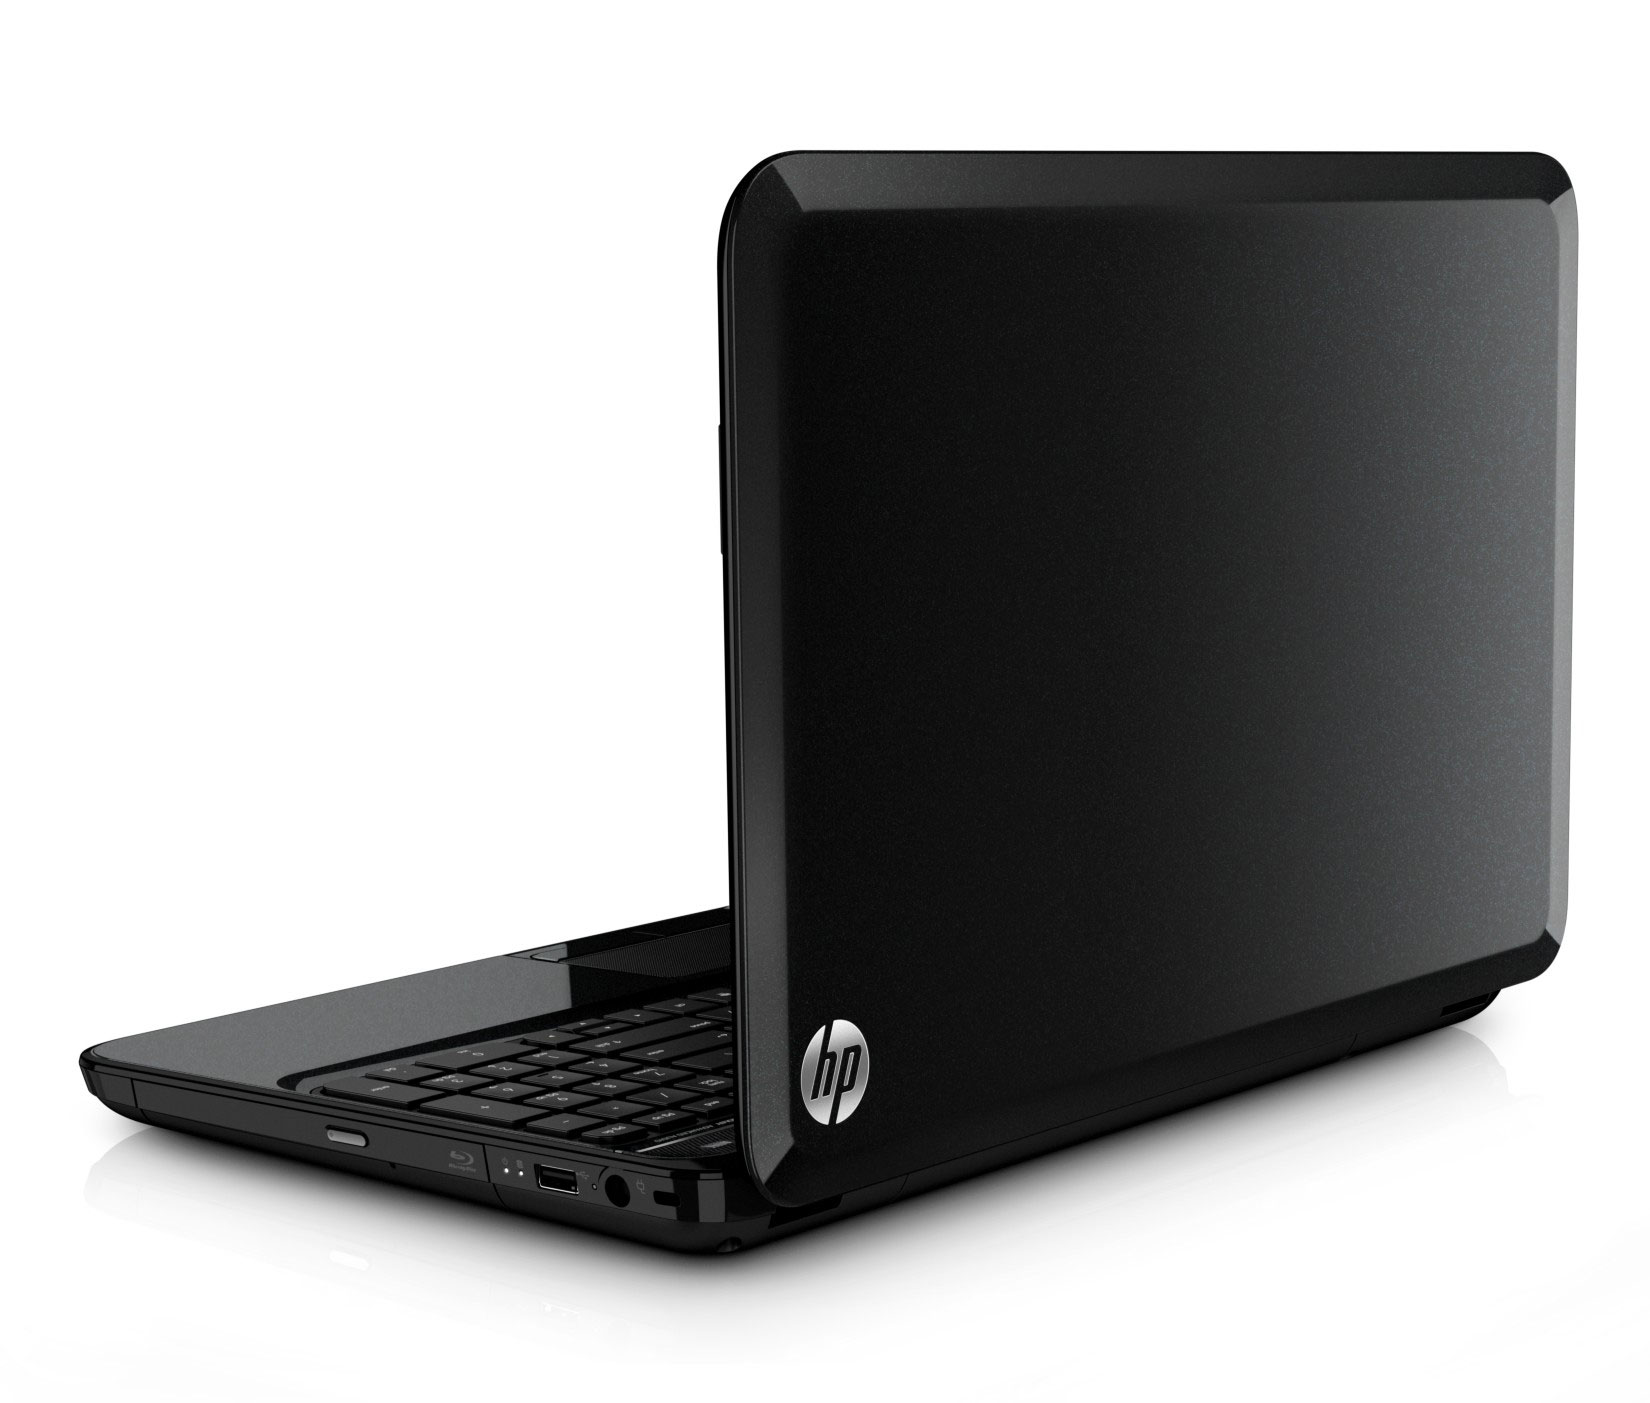 hp pavilion g6 2022sa 15 6 inch laptop intel core i3 2330m processor 2 2ghz 4gb ram 500gb hdd. Black Bedroom Furniture Sets. Home Design Ideas